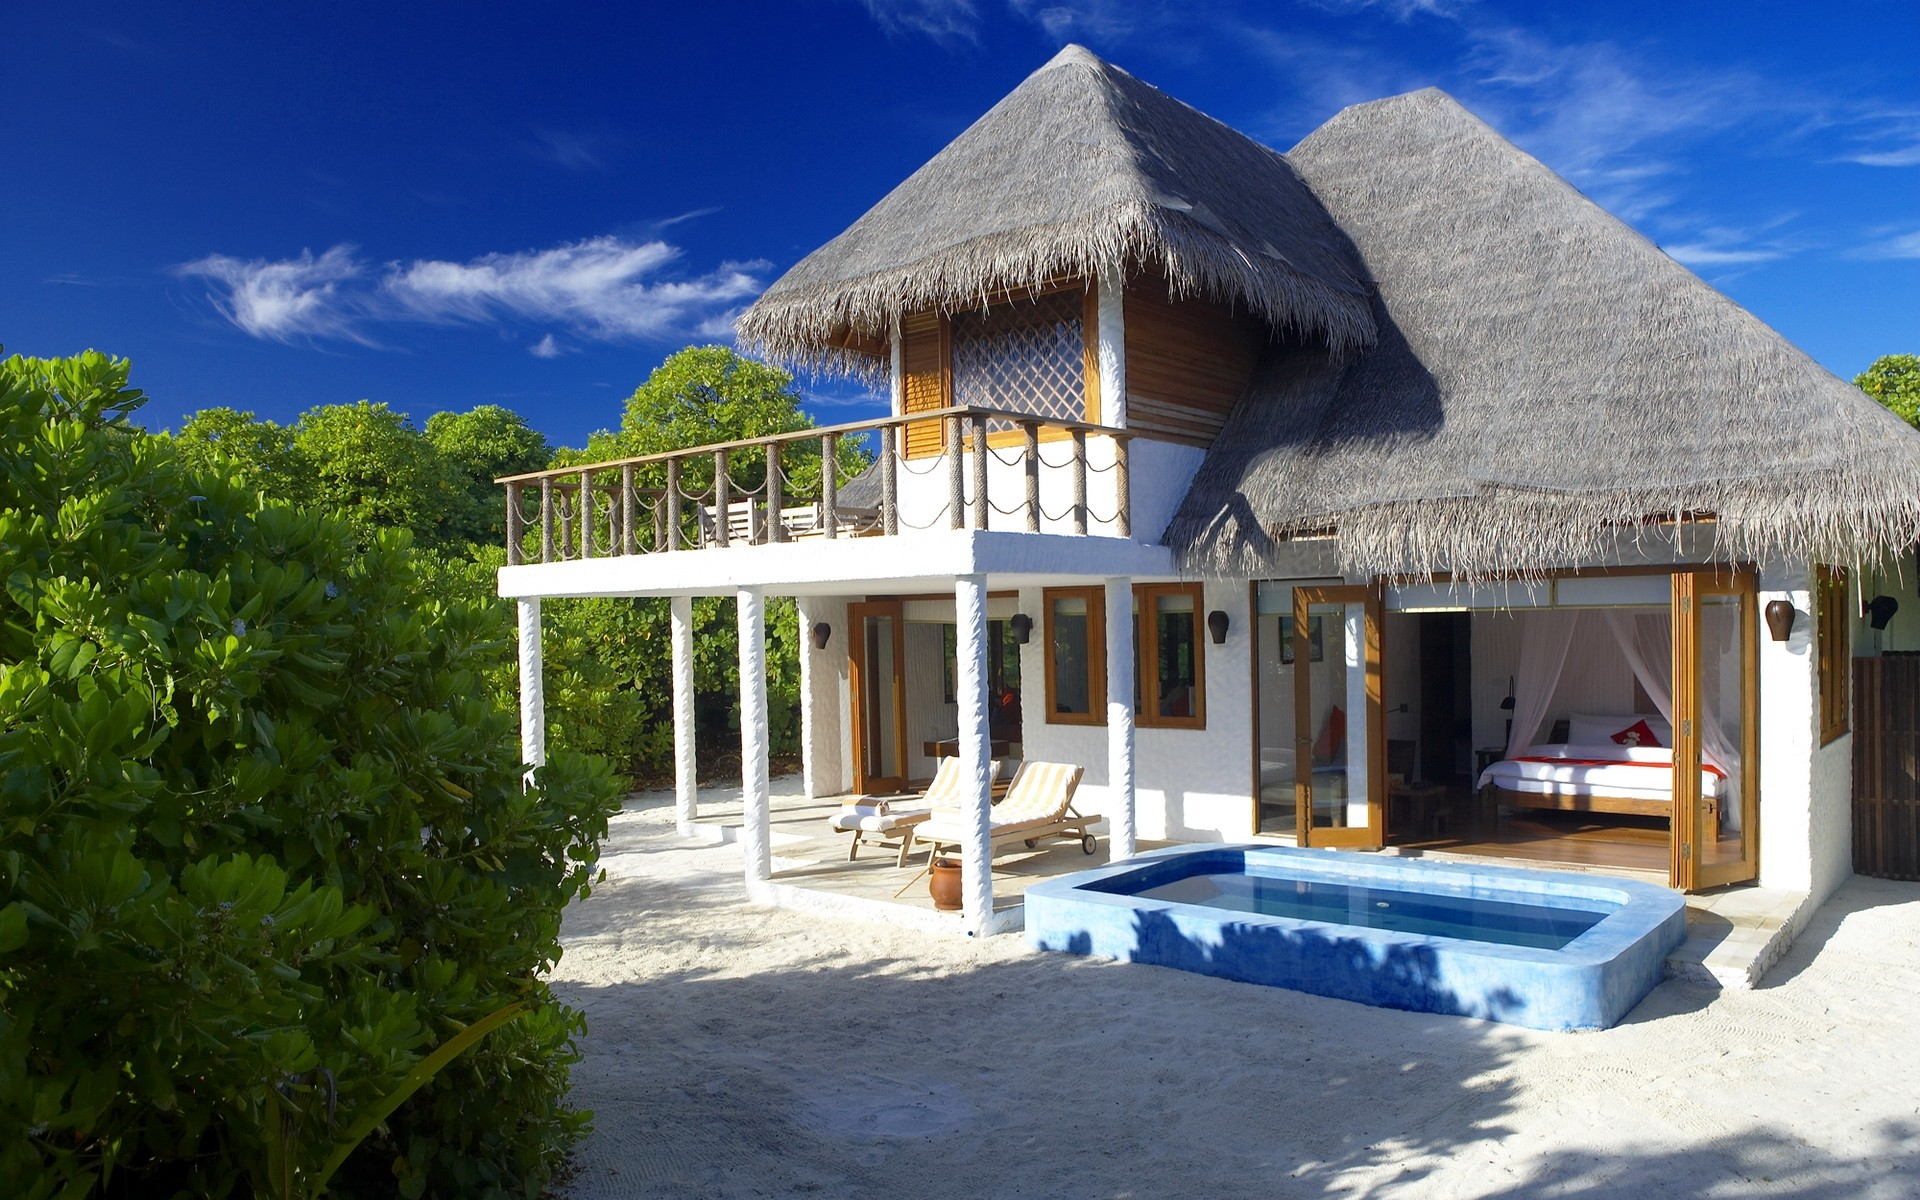 Dise o de bungalows hd 1920x1200 imagenes wallpapers for Design di una casa sulla spiaggia